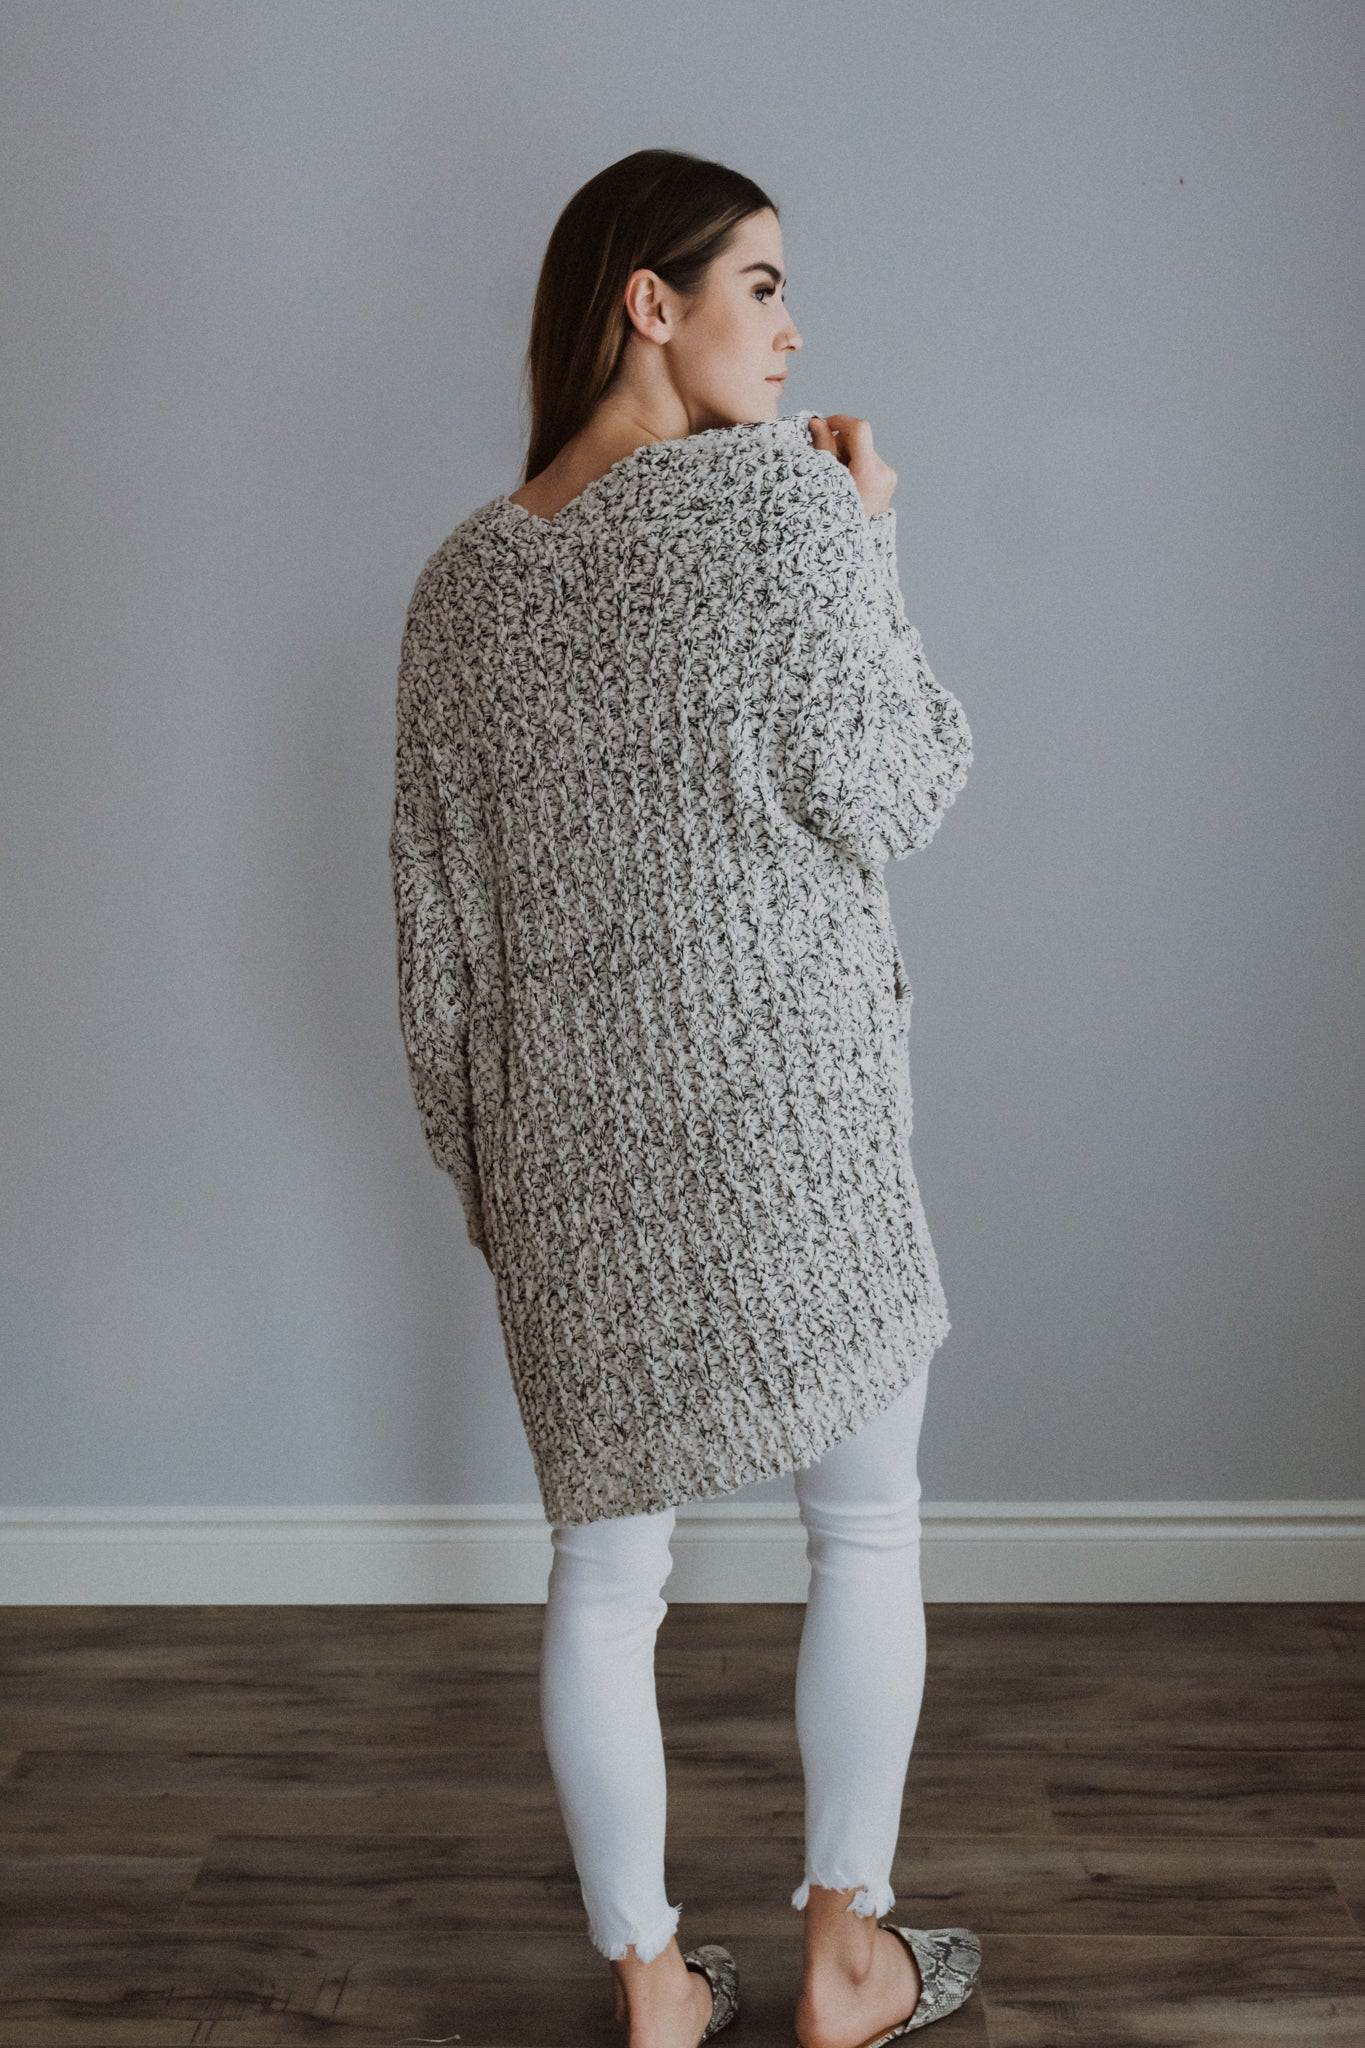 Home Again Cardigan / FINAL SALE